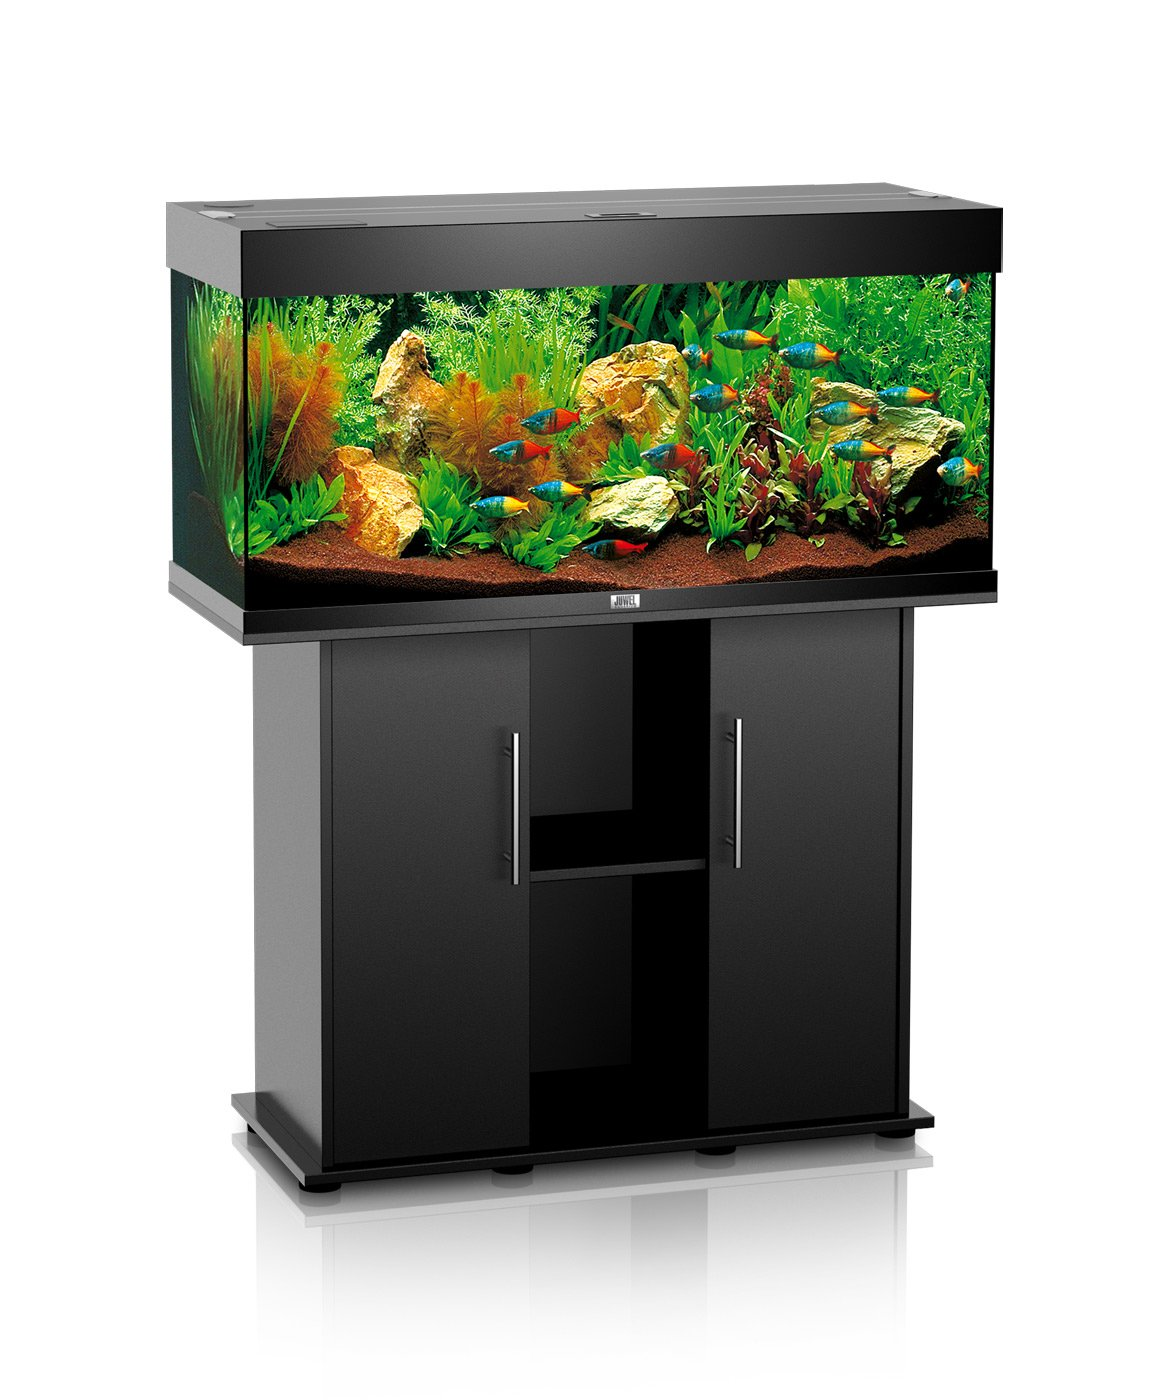 meuble aquarium 100 x 40. Black Bedroom Furniture Sets. Home Design Ideas